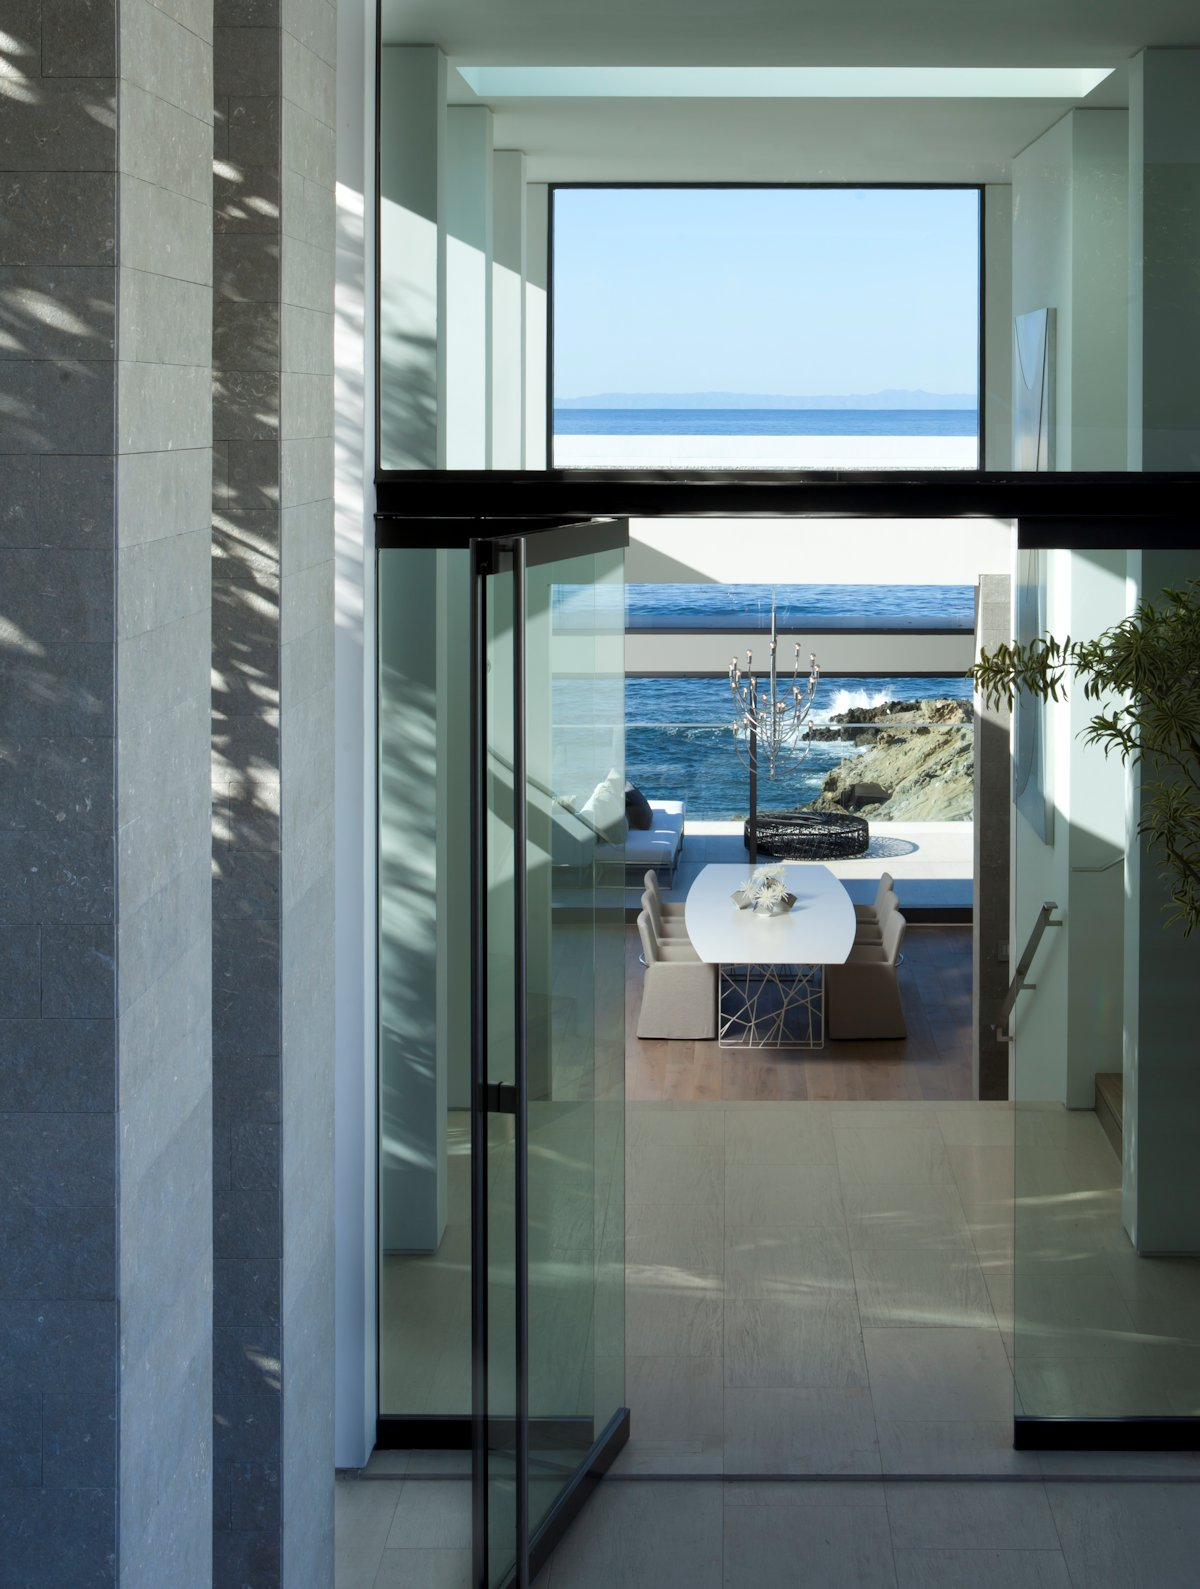 Glass Door, Dining Space, Ocean Views, Beach House in Laguna Beach, California